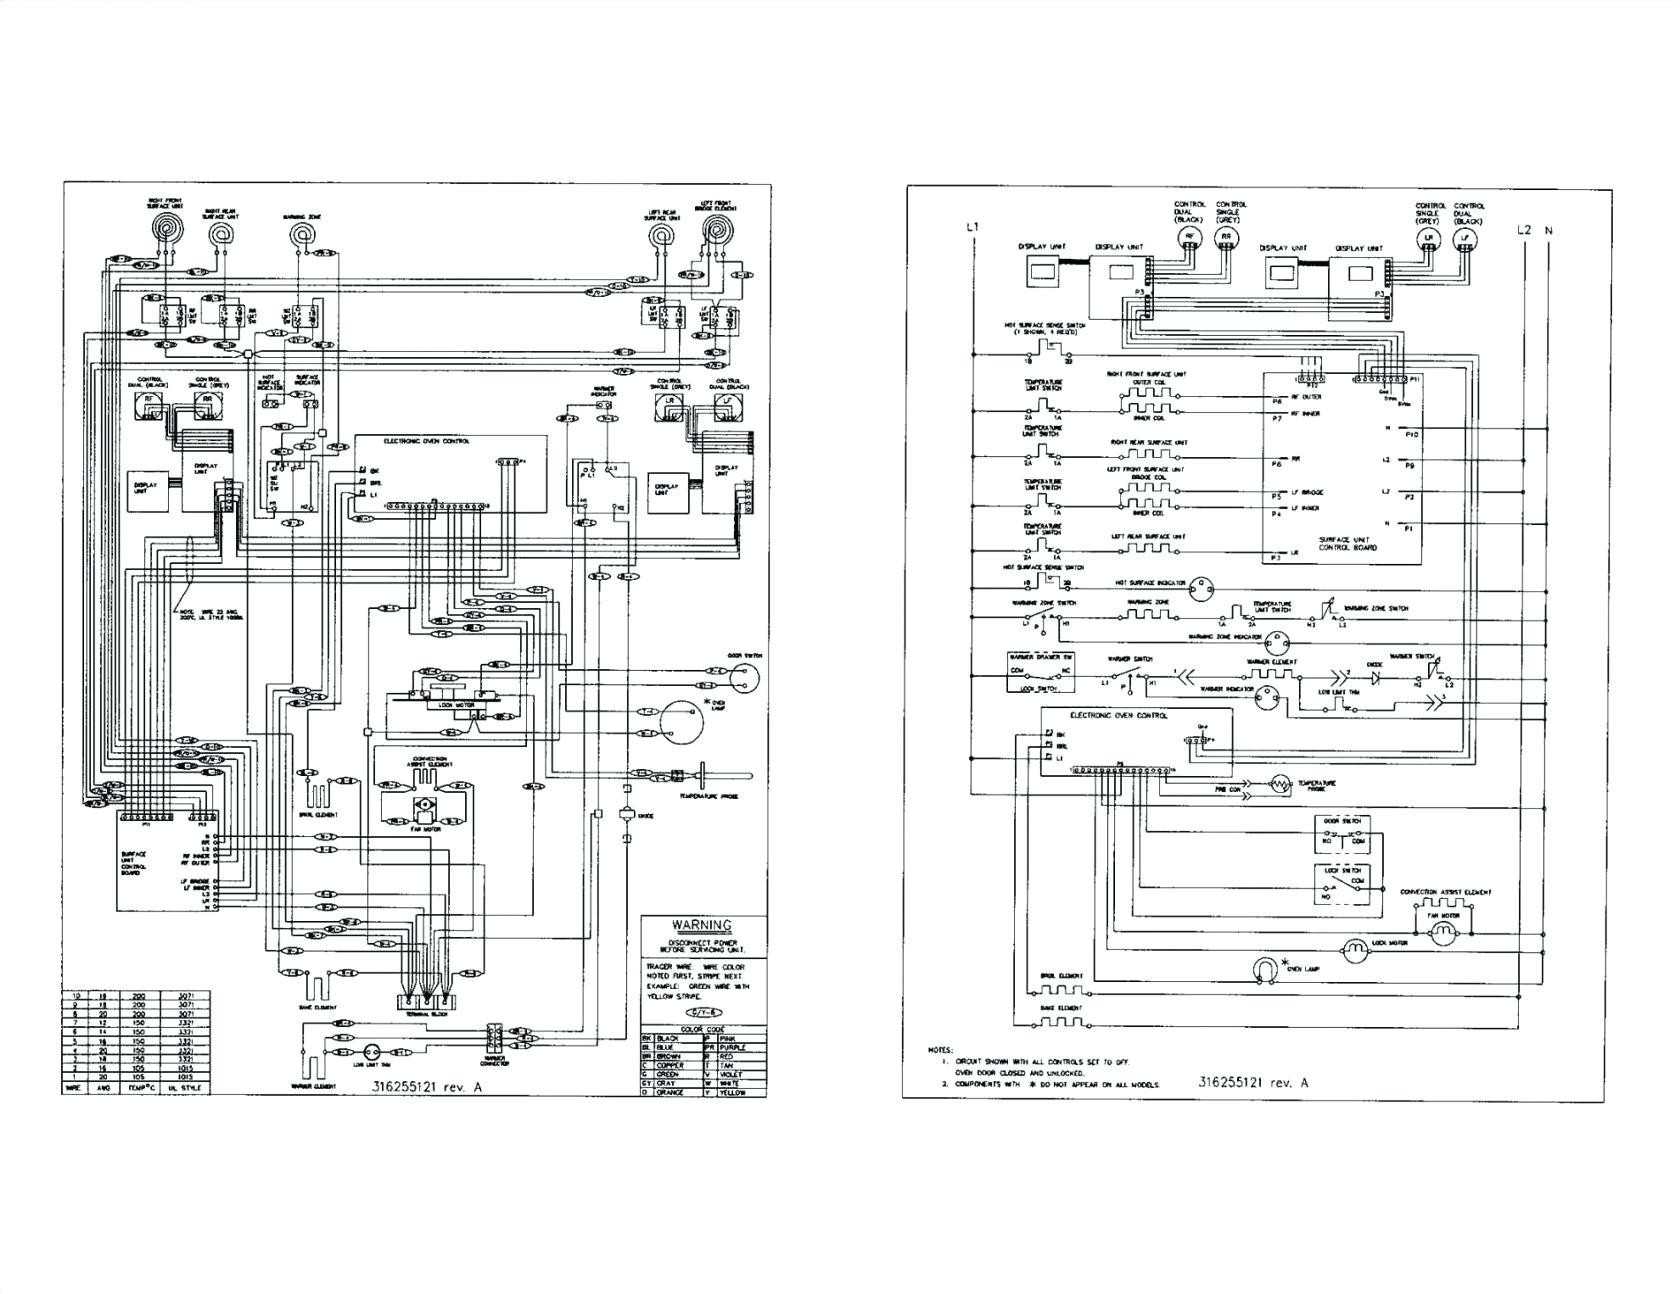 Wiring Diagram For Ge Refrigerator Wiring Diagram Image